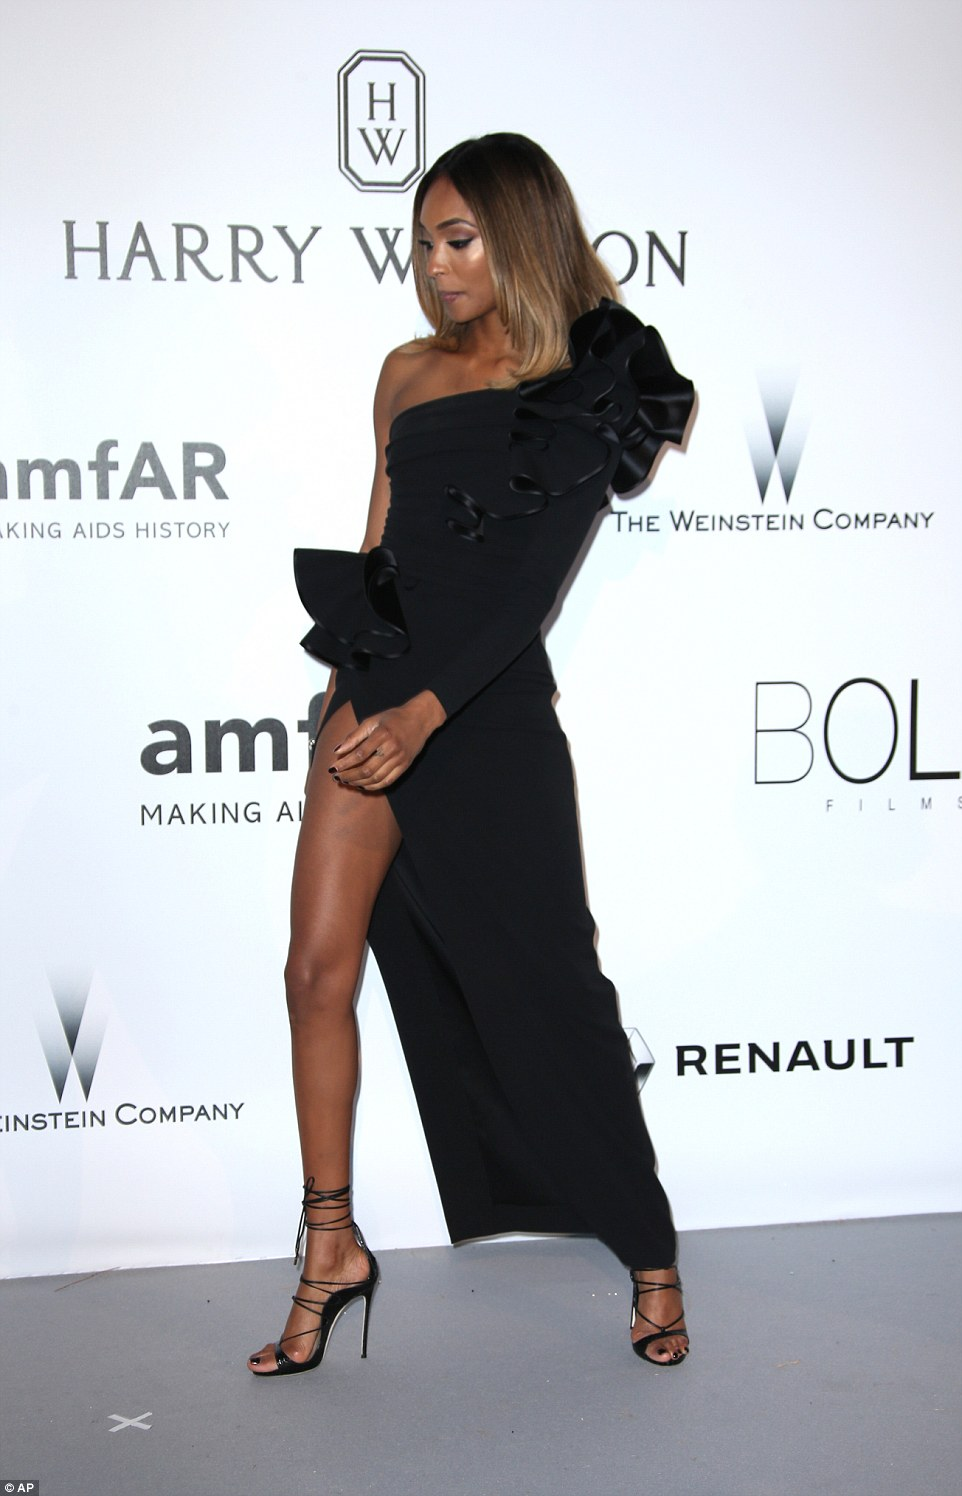 Legs eleven! She joined her fellow supermodels in treating the red carpet as an exhibit for their endless legs as she showed off her pins through the endless split extending the length of her leg